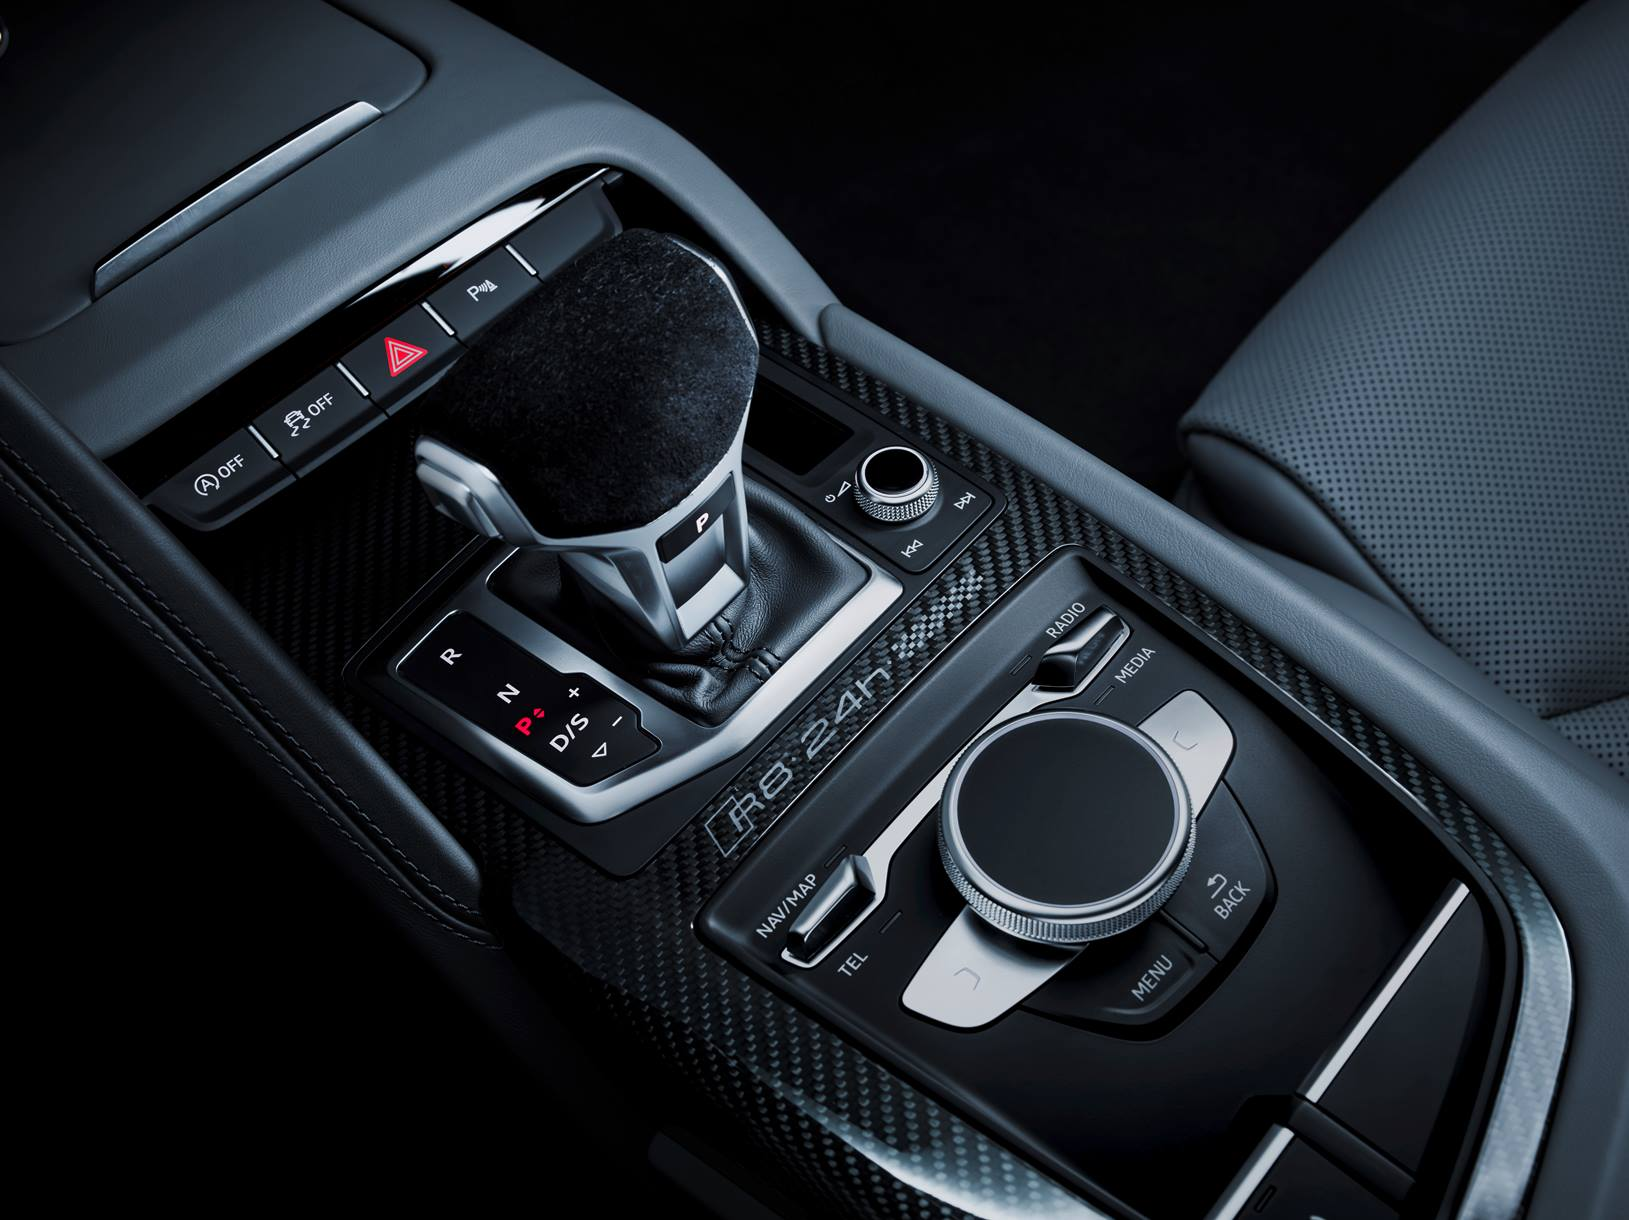 Audi R8 V10 selection 24h - 2016 - gearshift / levier de vitesses